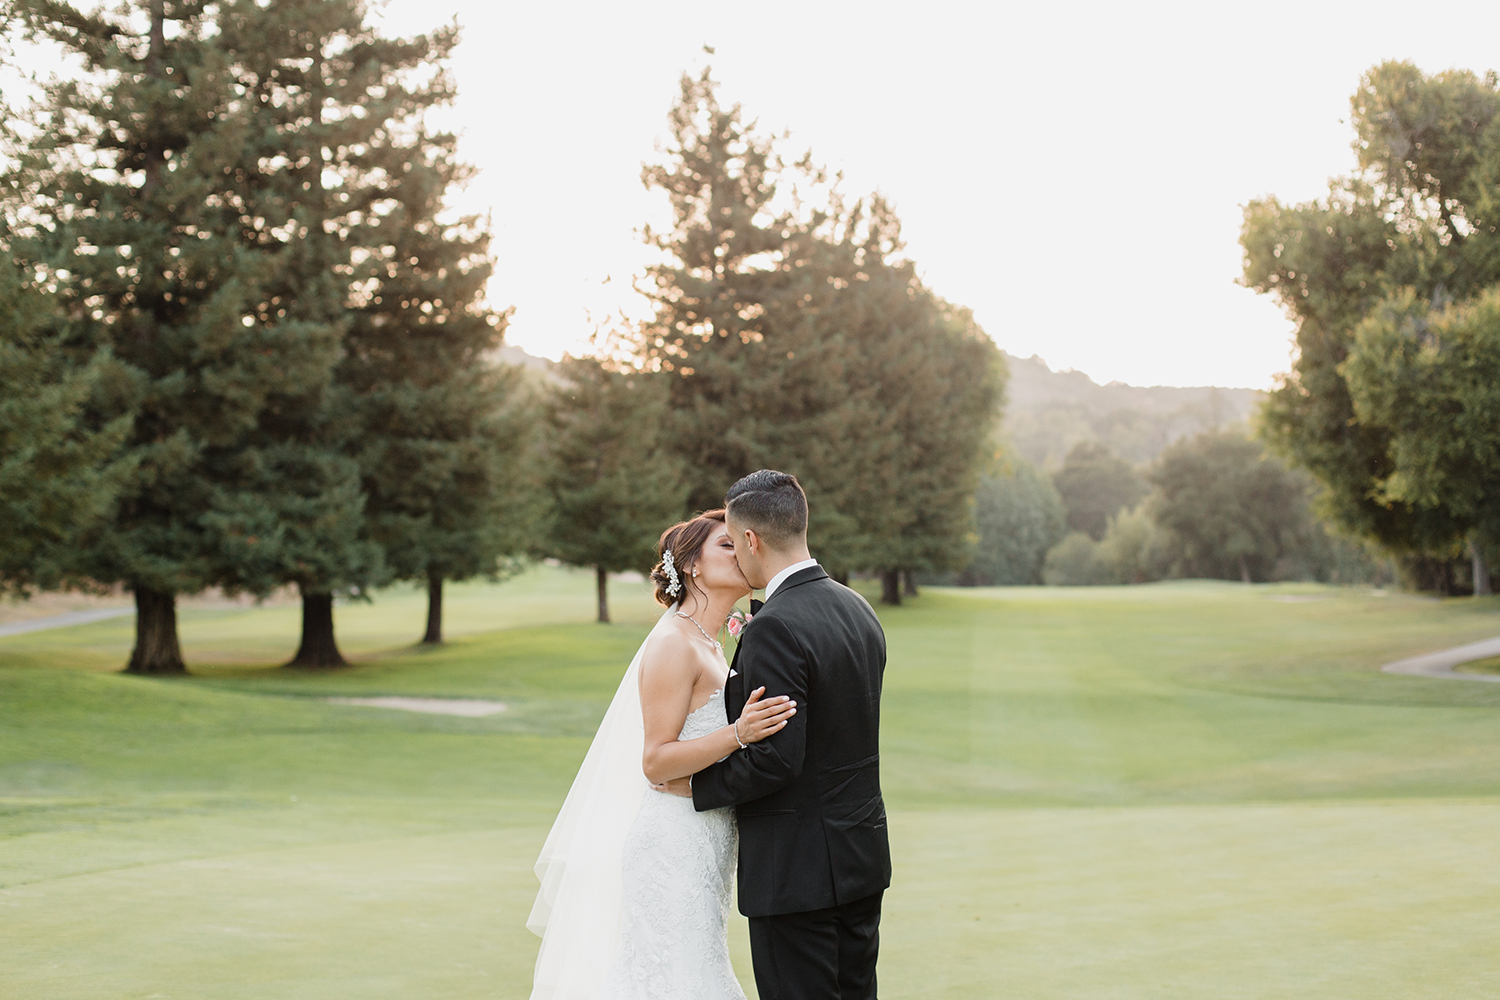 Bride and groom kissing during sunset at their wedding in Saratoga Country Club.